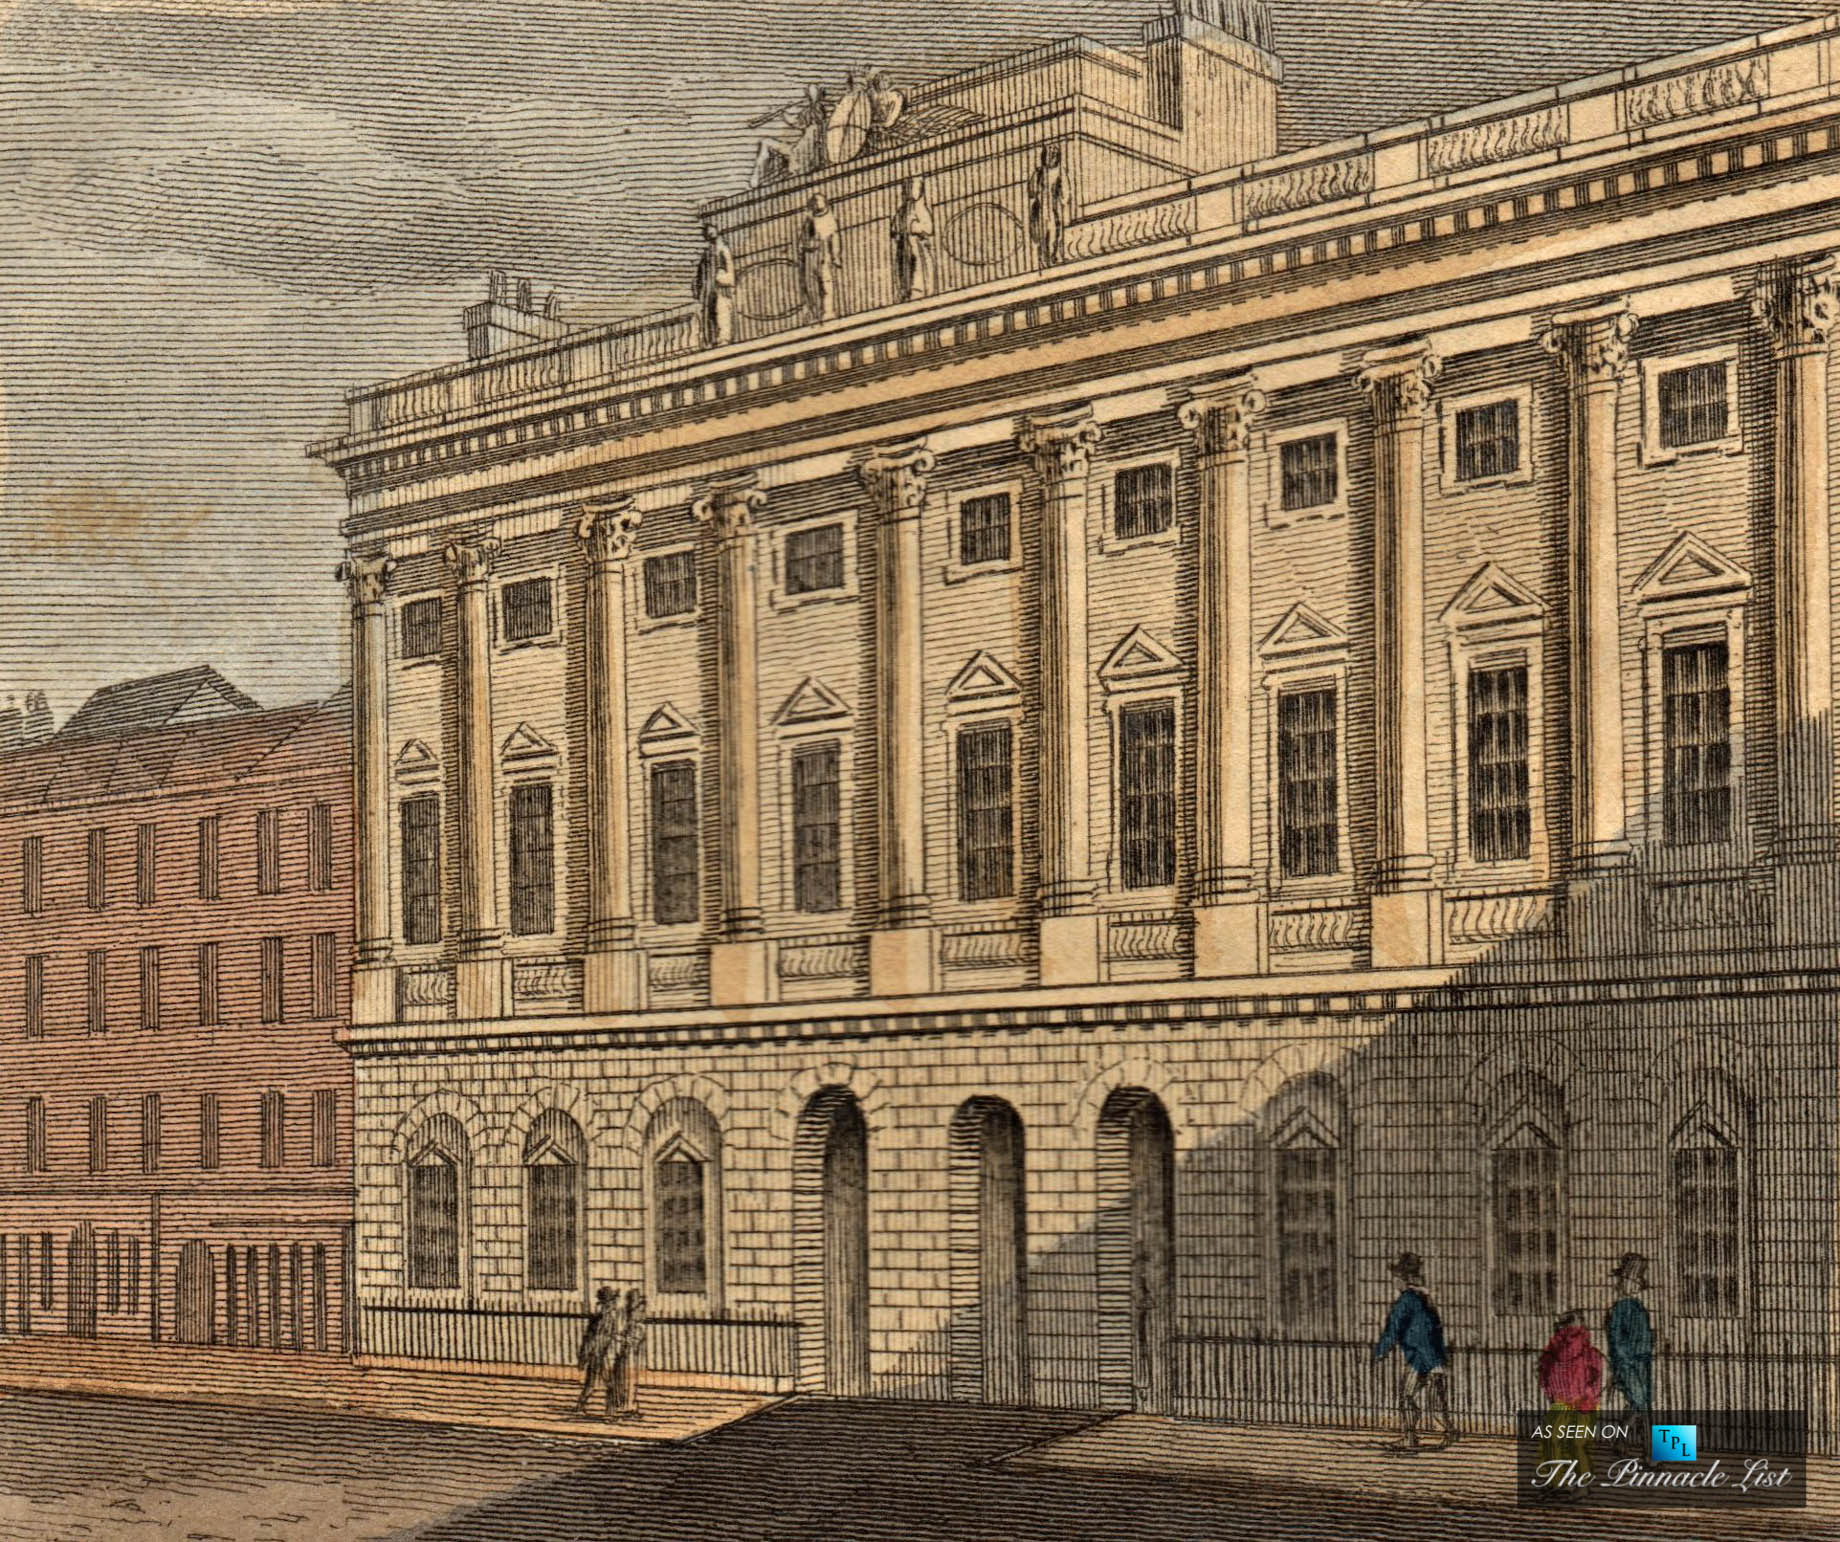 The Story Behind the Walls - Somerset House at the Strand in London